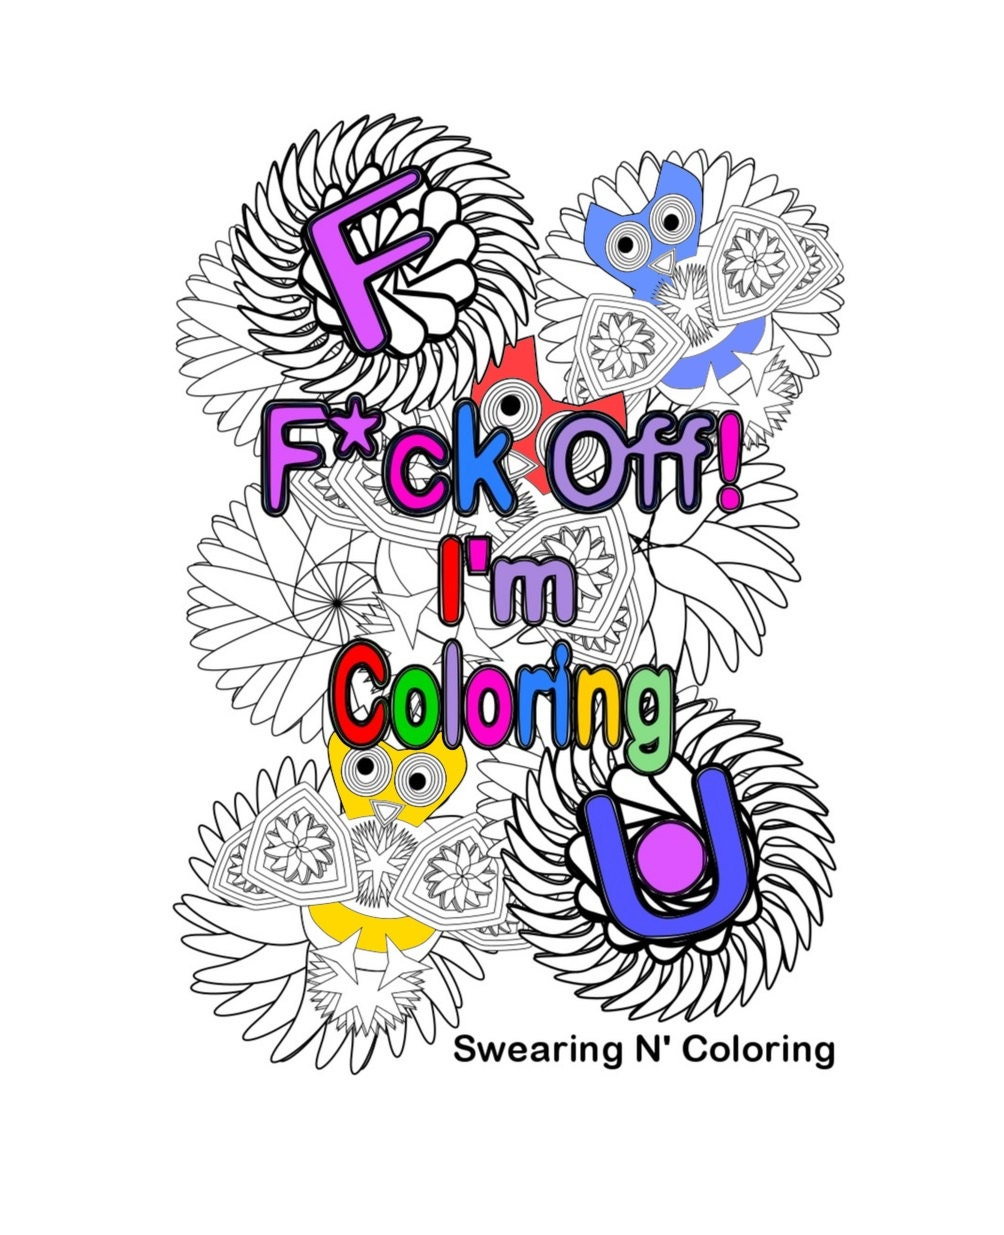 Swear word coloring book volume 1 -  Zoom